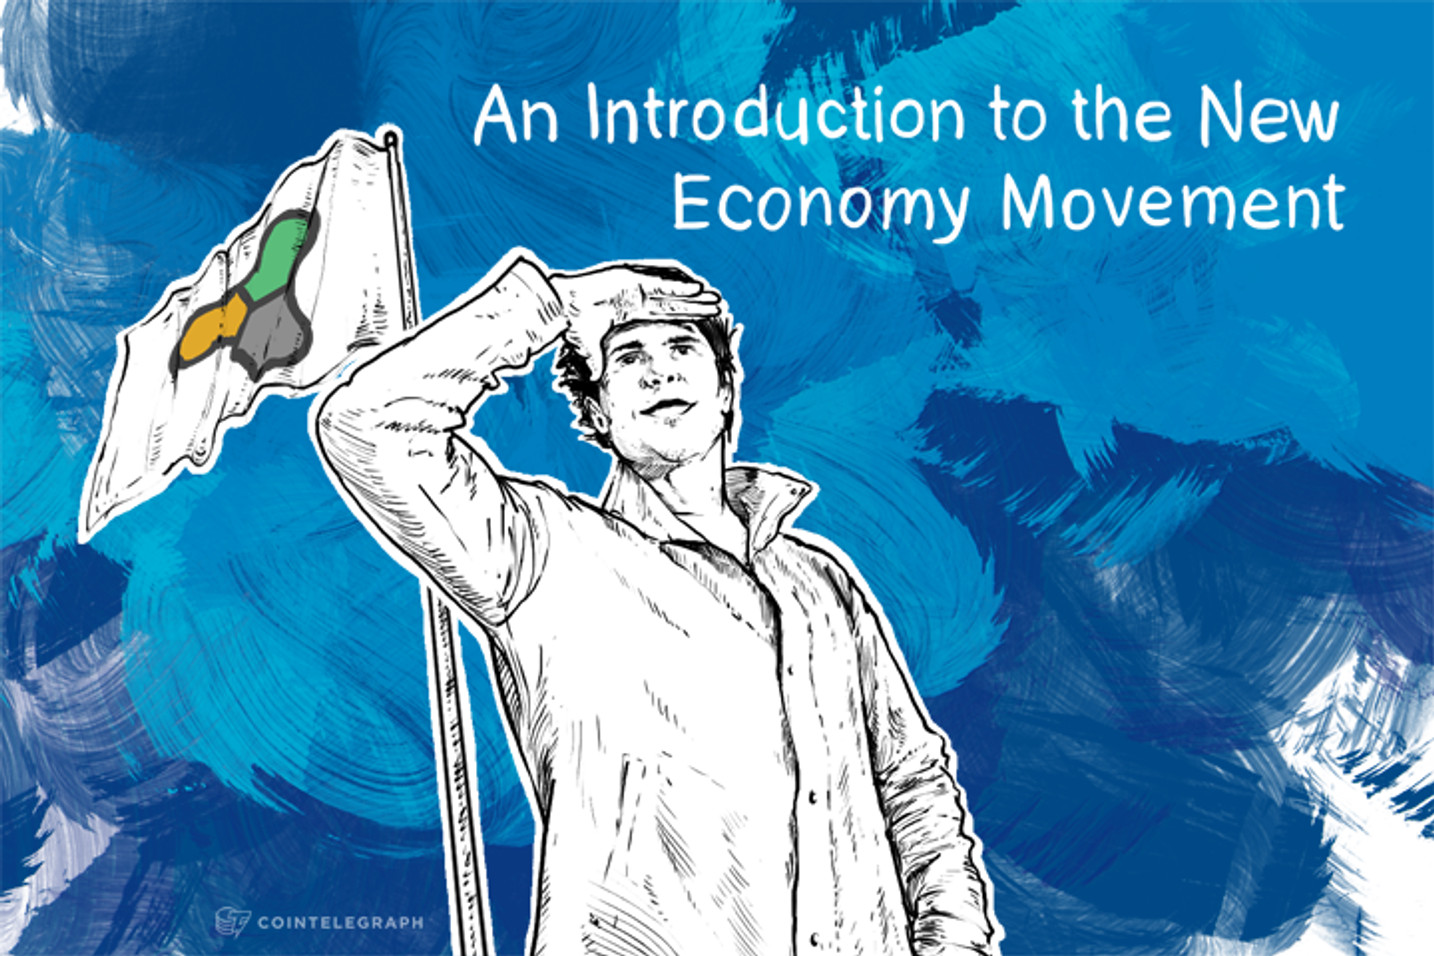 An Introduction to the New Economy Movement